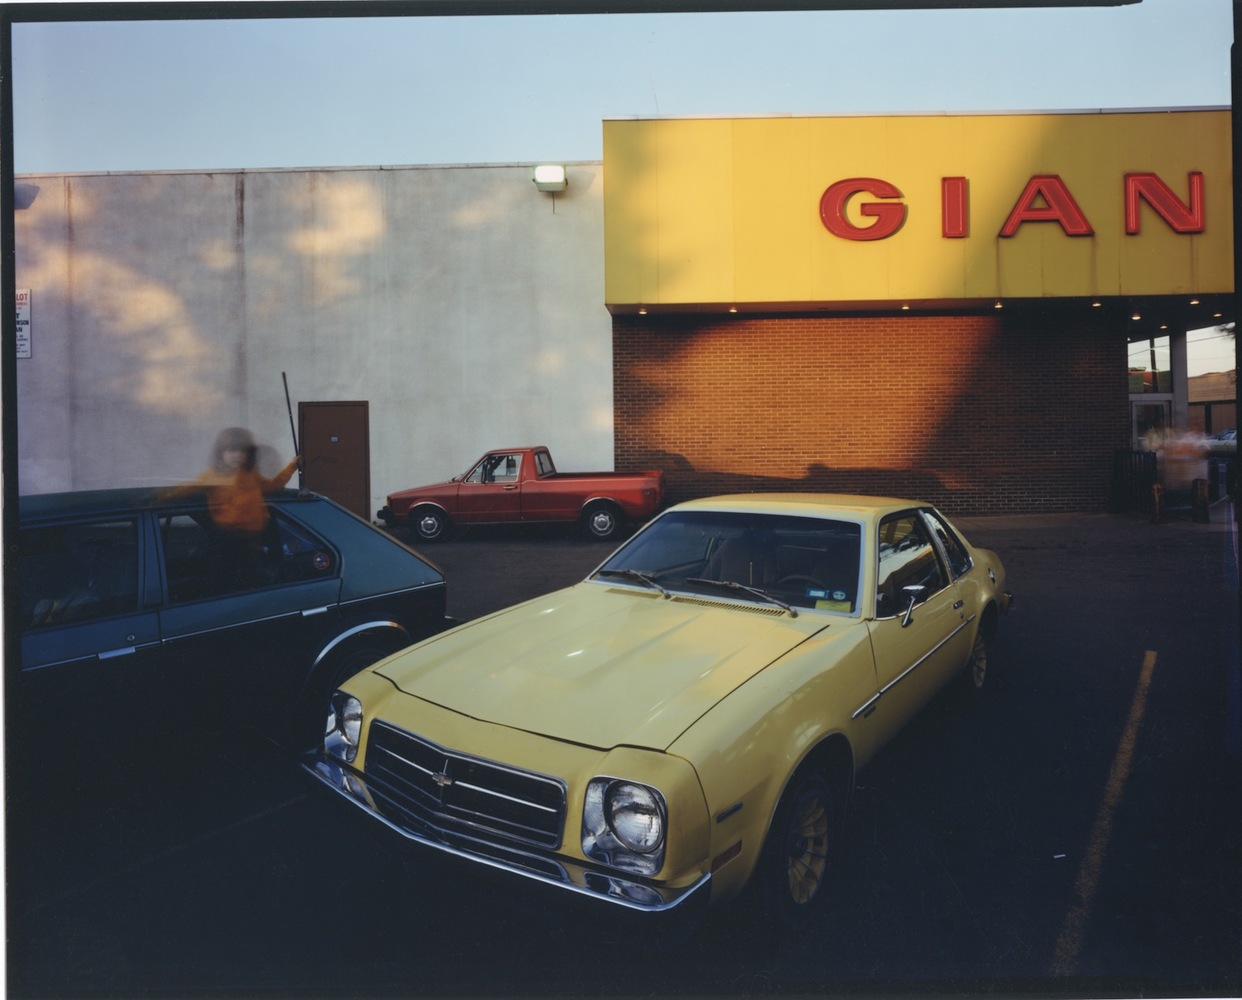 1971 ChevroletMonza, Giant Supermarket, Upstate NY, c. 1987